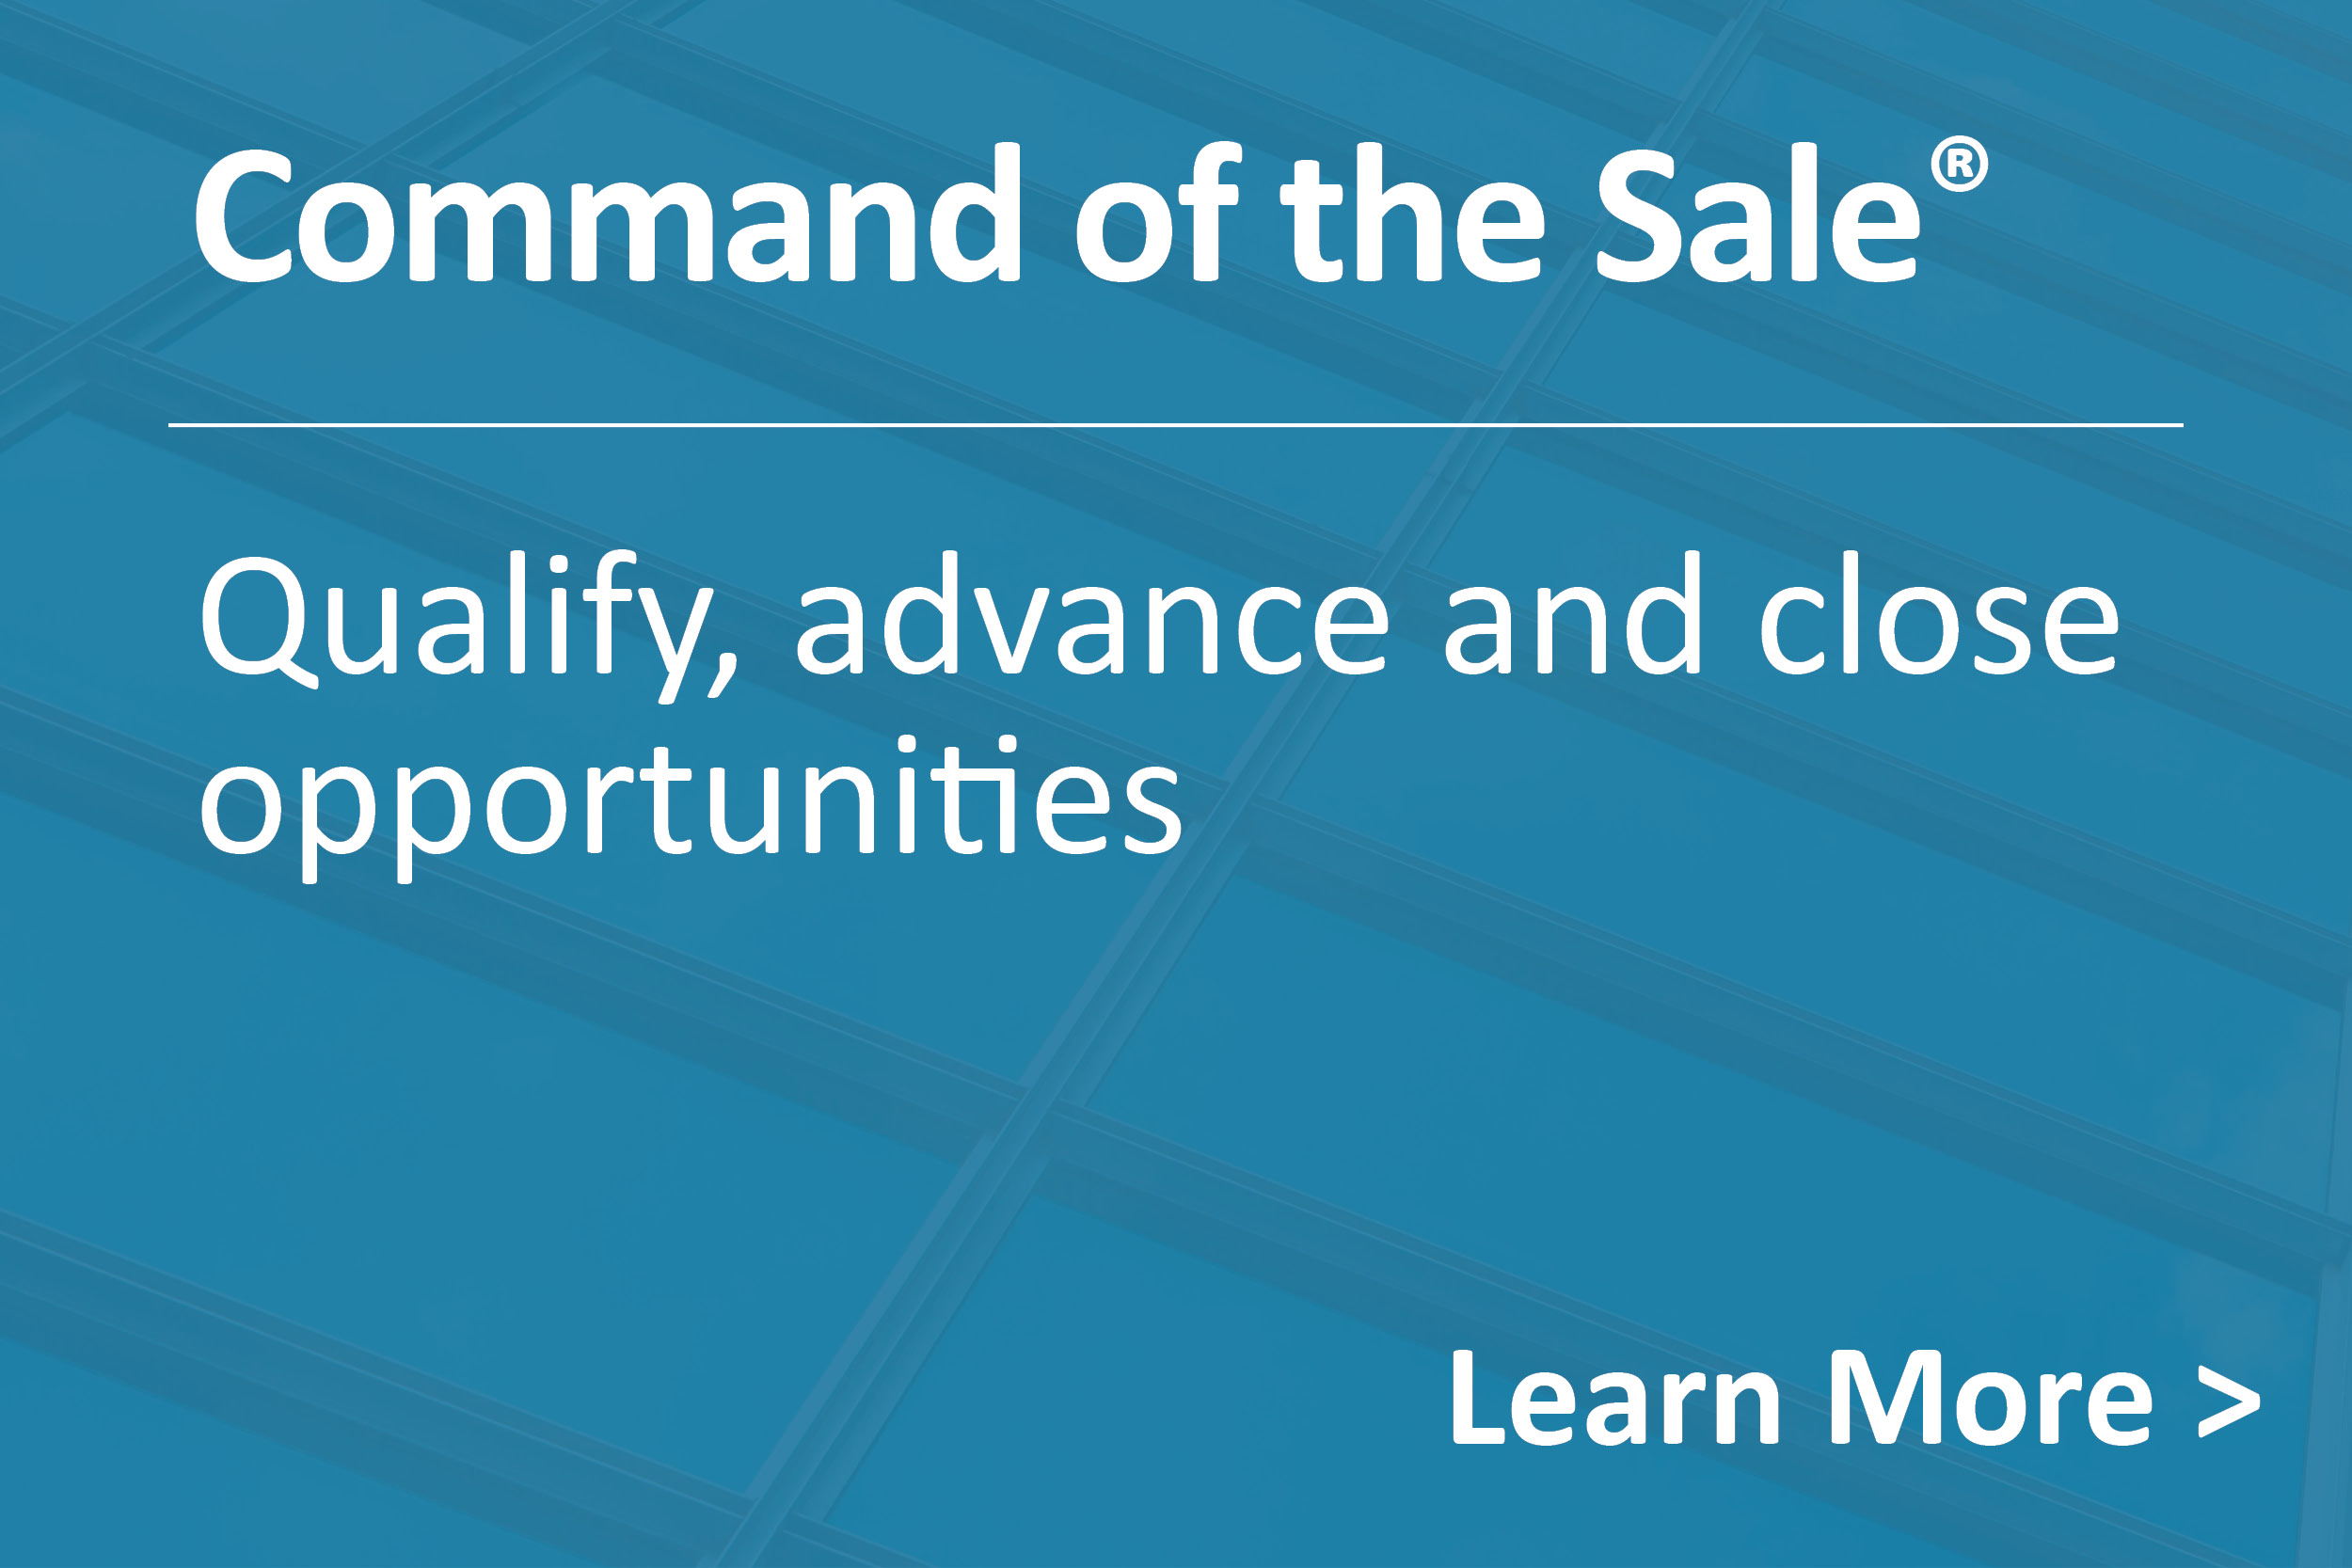 Command of the Sale